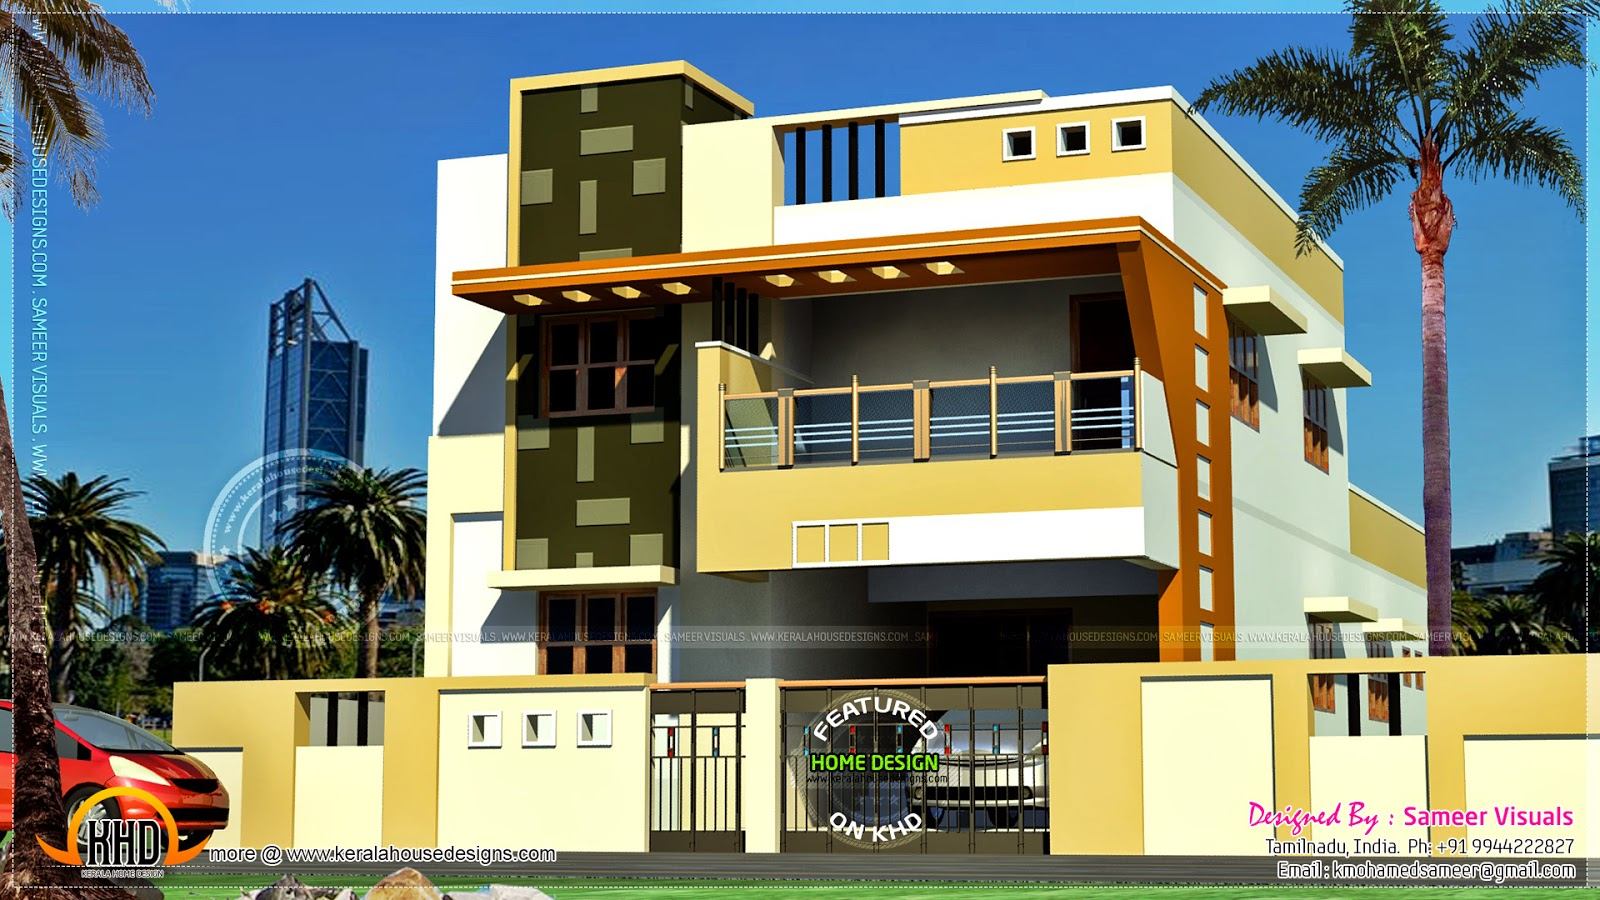 Indian Home Design: Modern South Indian House Design